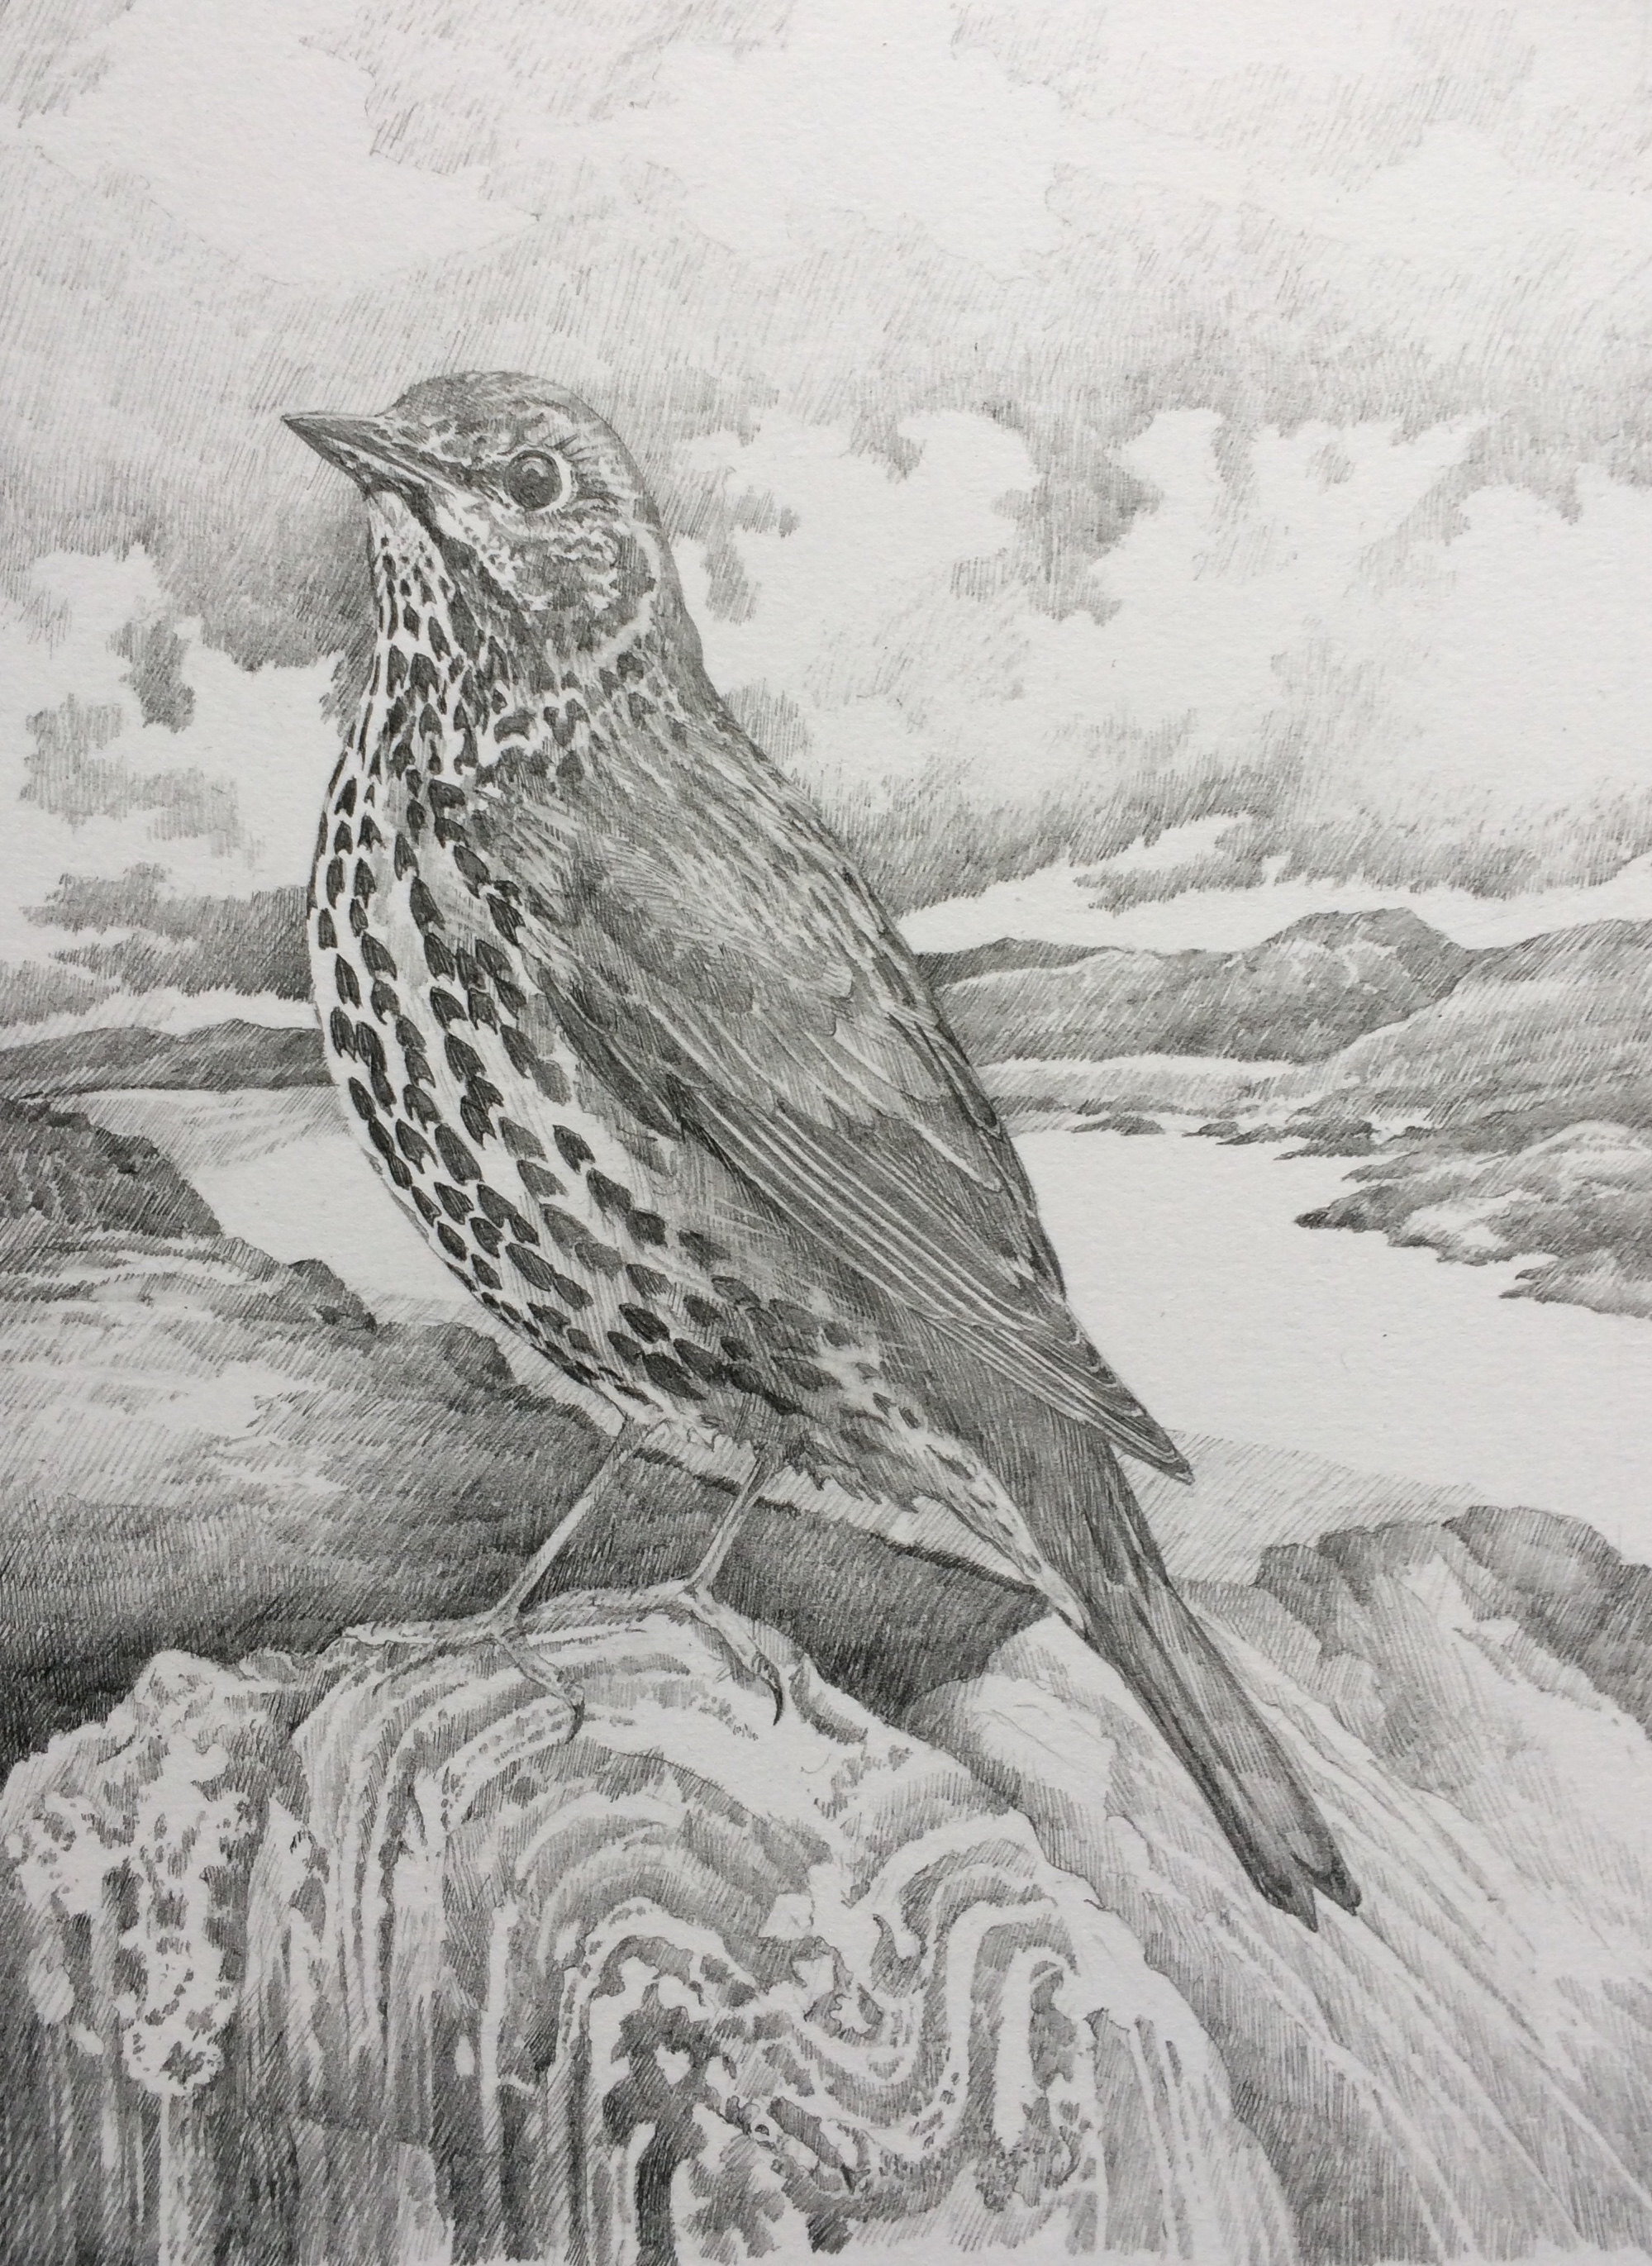 'Hebridean' Thrush  - study from Carinish, North Uist